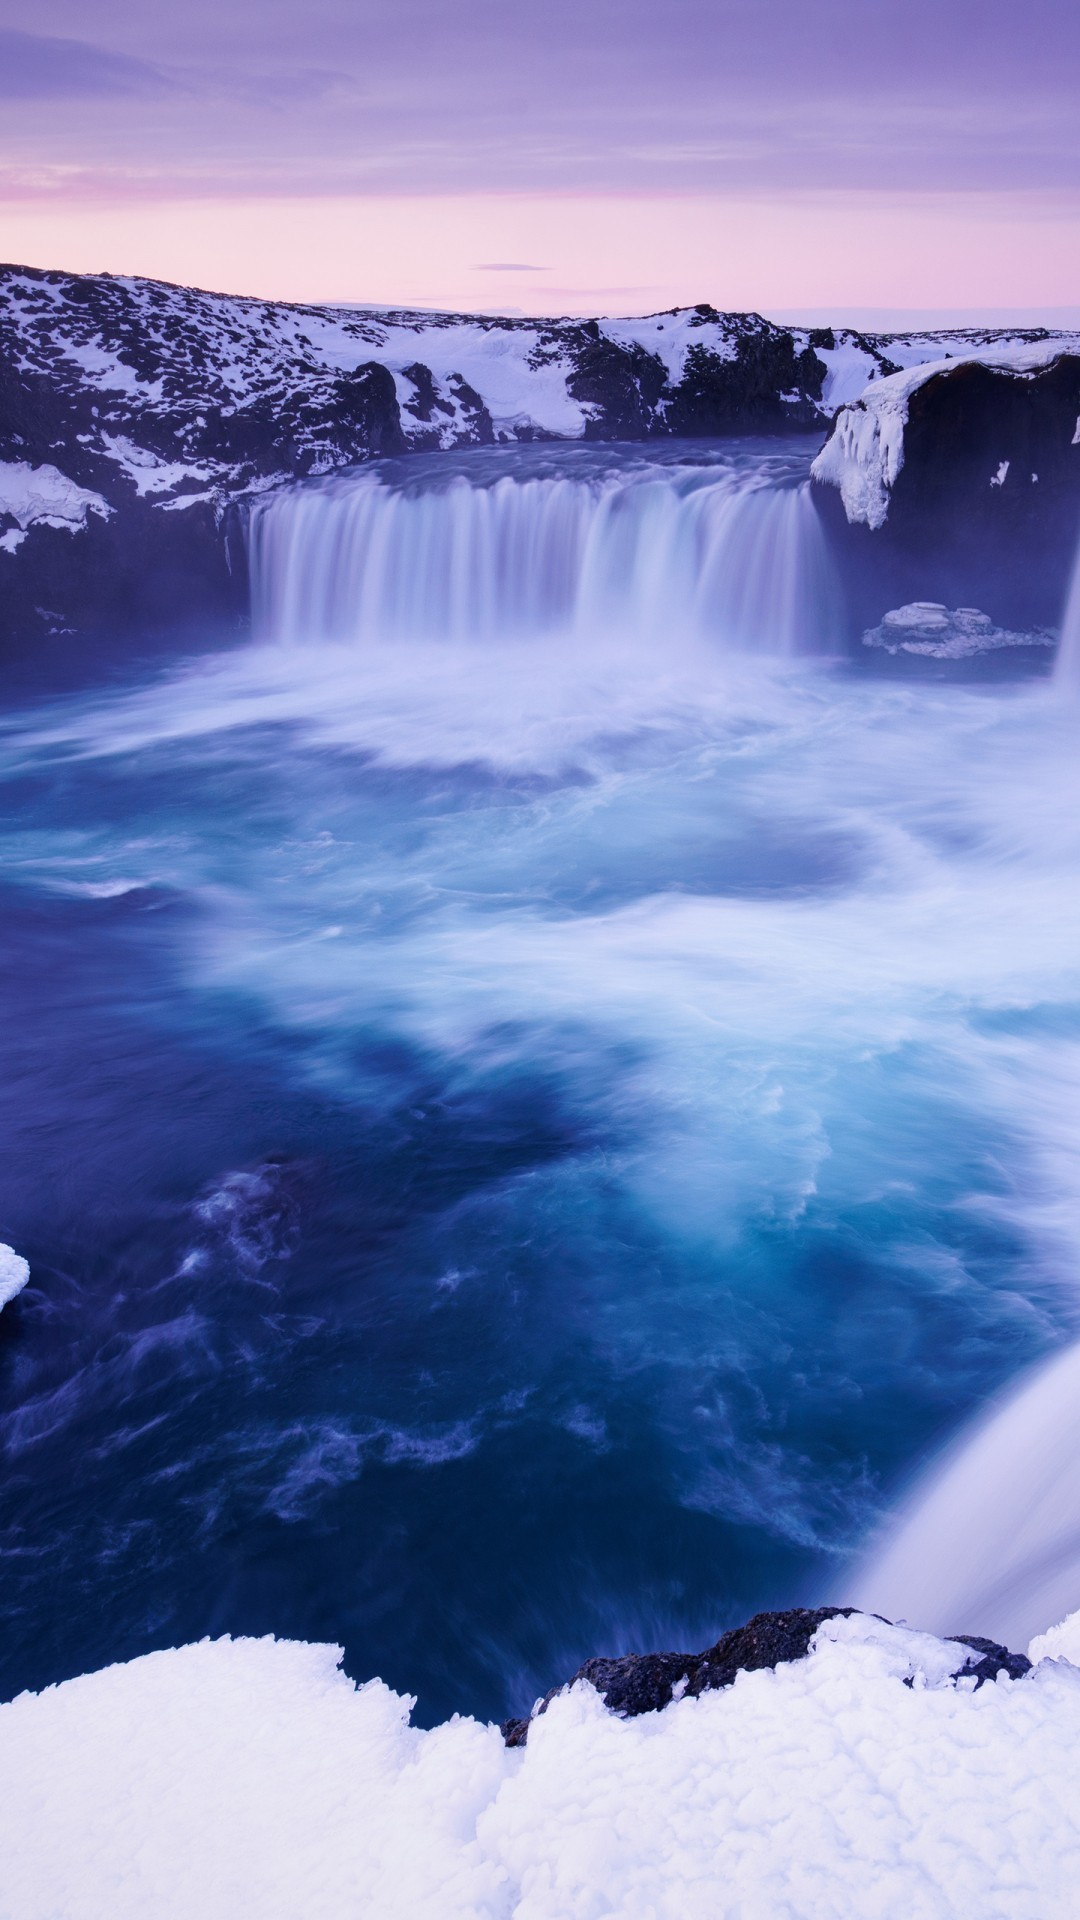 Free Godafoss waterfall Iceland phone wallpaper by reflections22